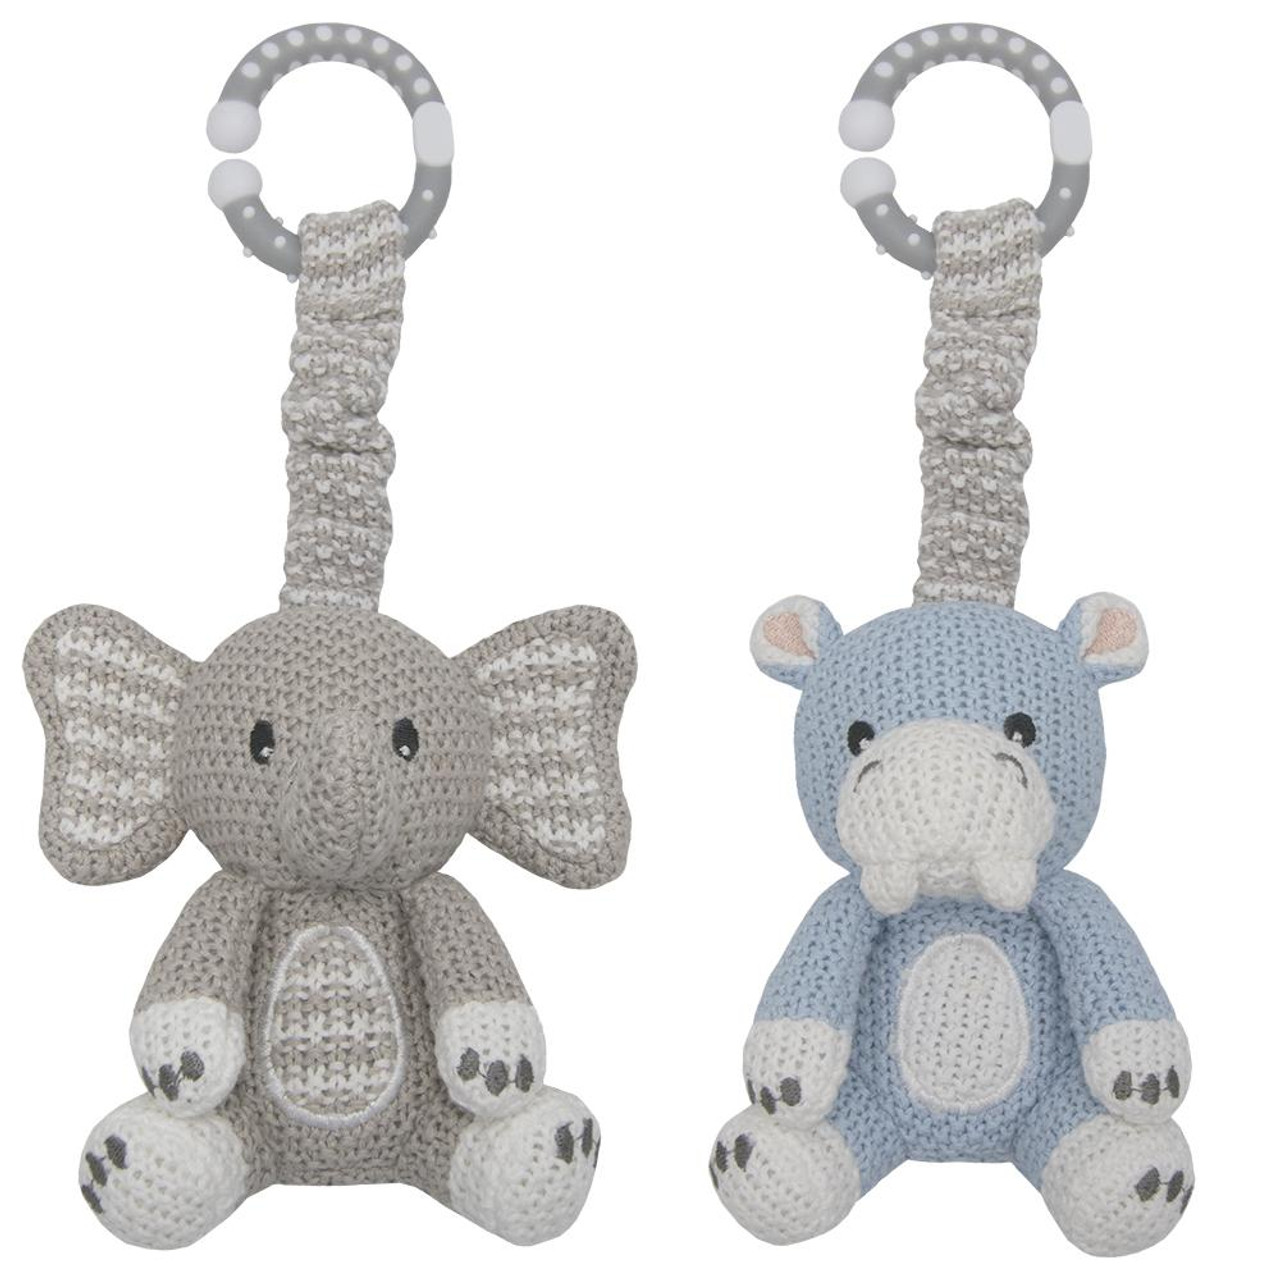 Living Textiles 2pk Stroller Toy at Baby Barn Discounts Living Textiles knitted pram toys are versatile to be hung on either prams , playgym or carseats.